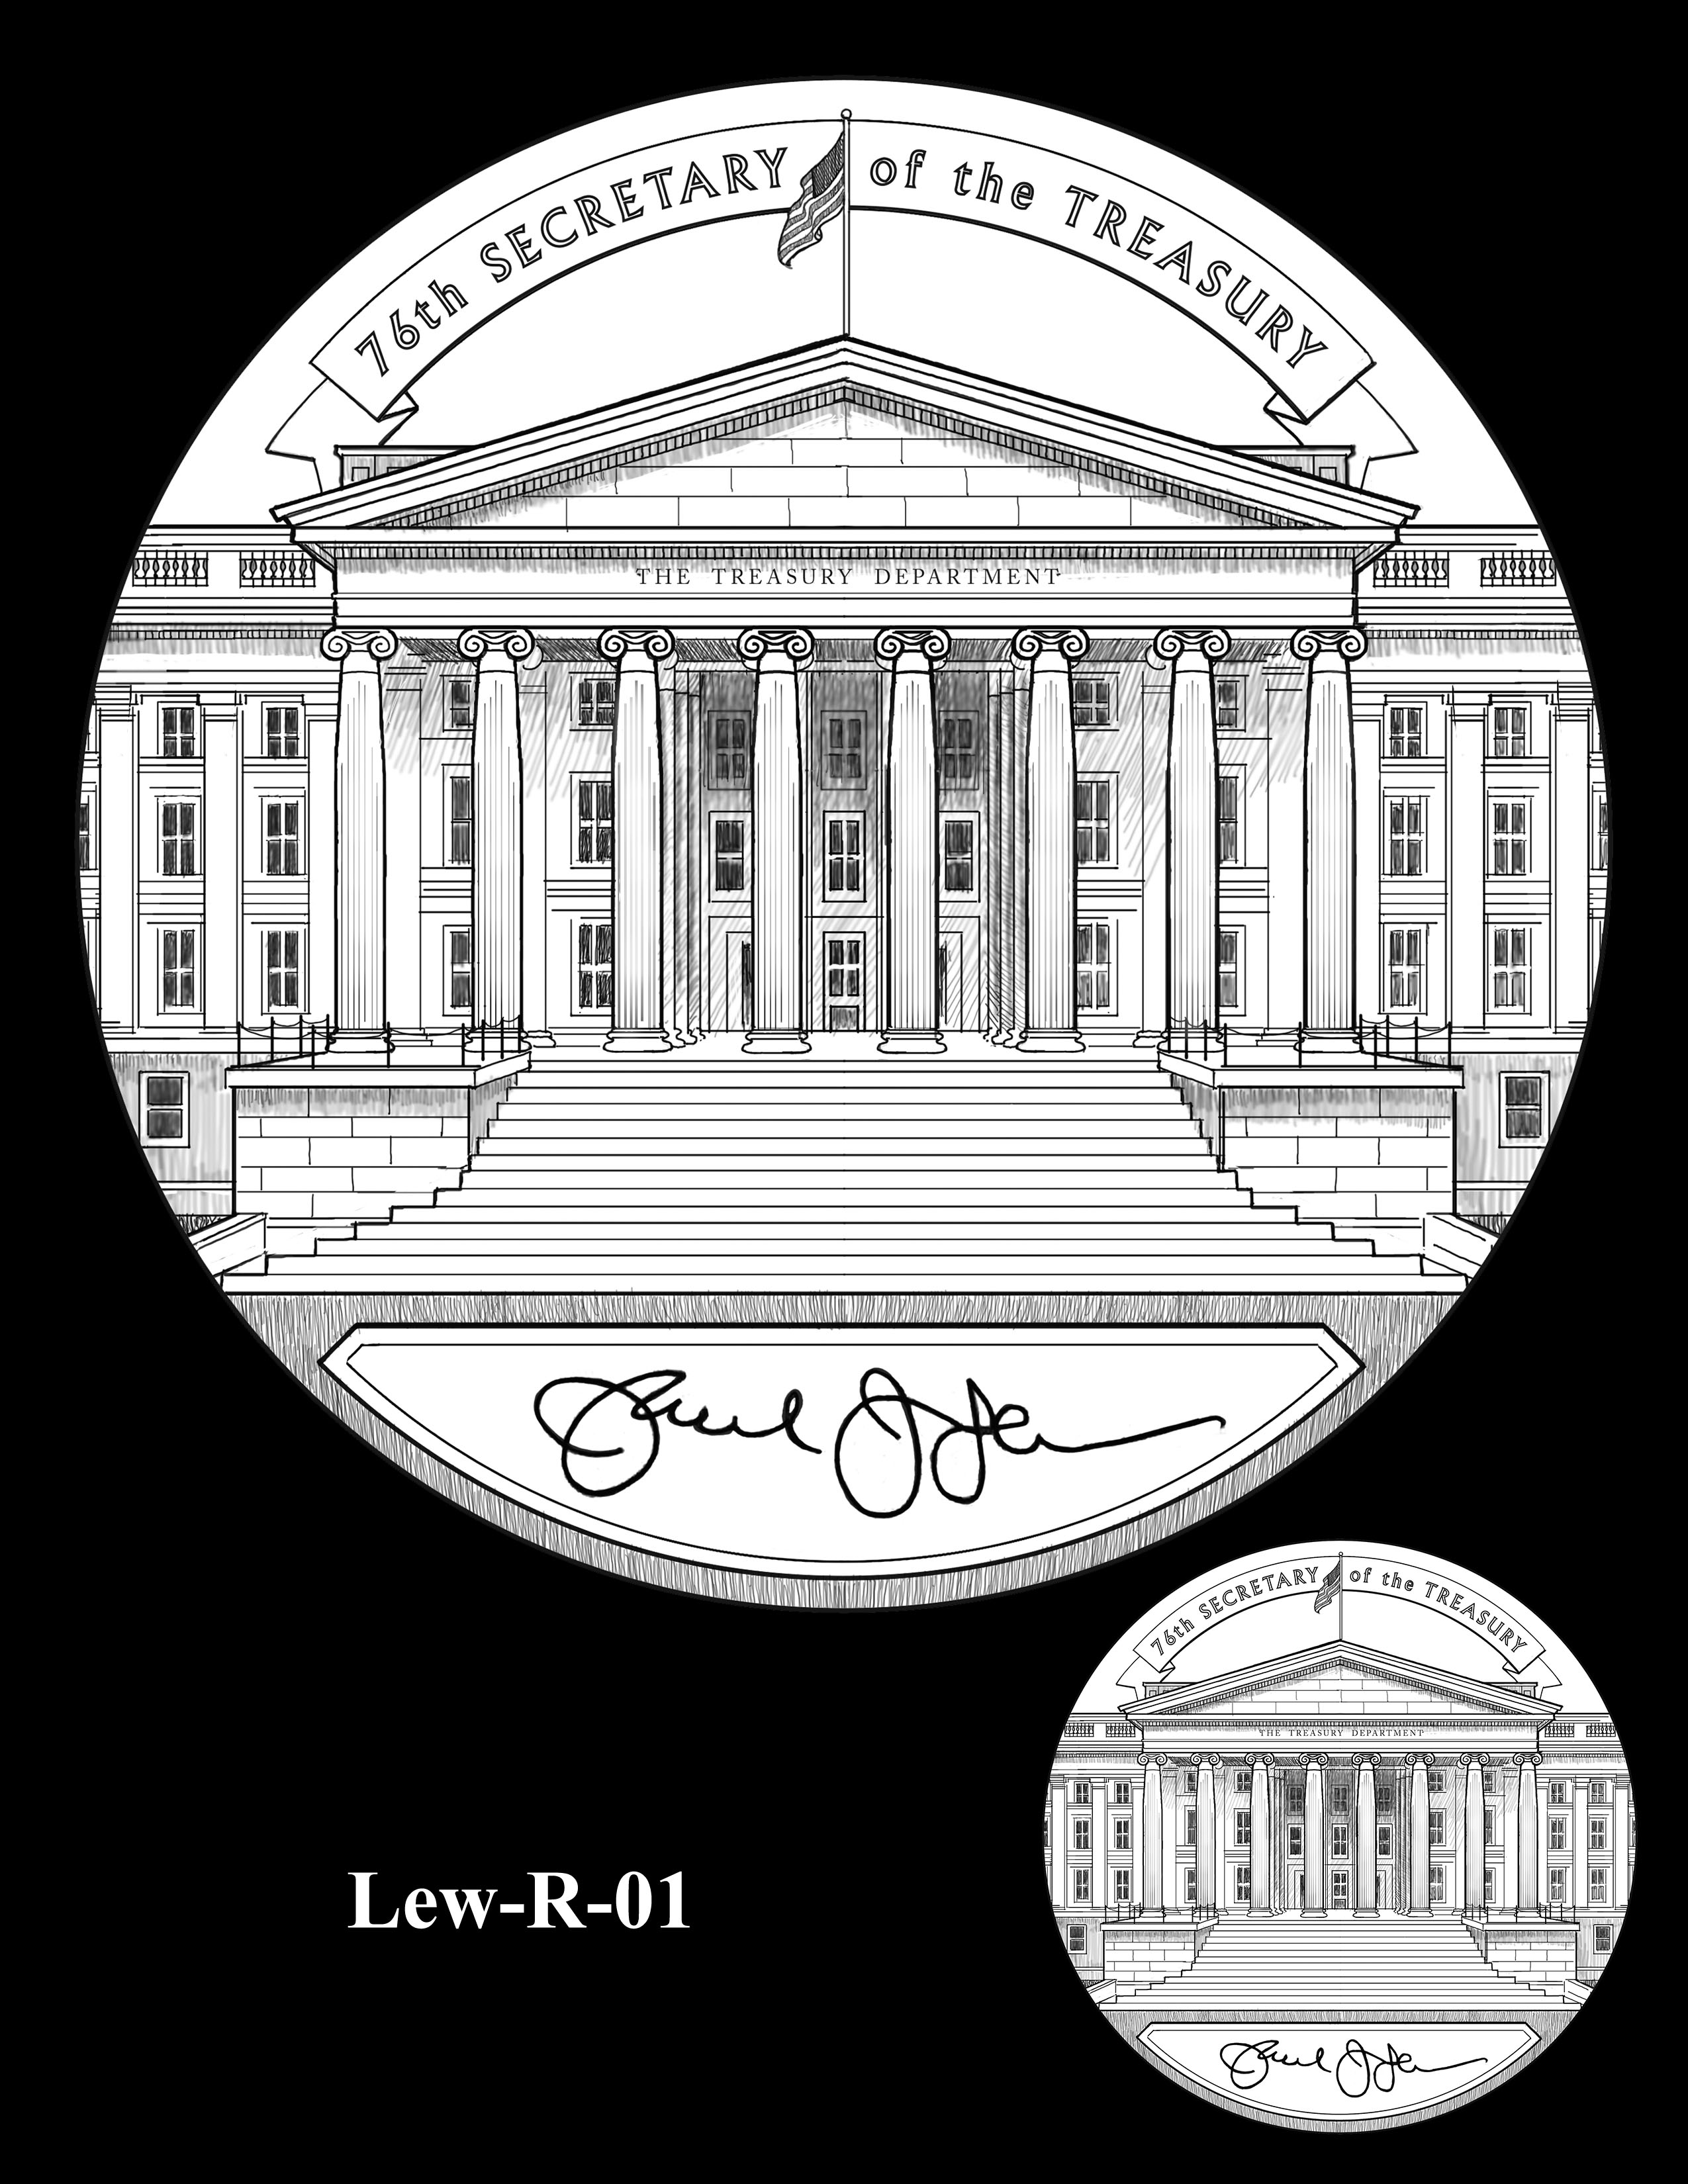 Lew-R-01 - Jacob J. Lew Secretary of the Treasury Medal Reverse